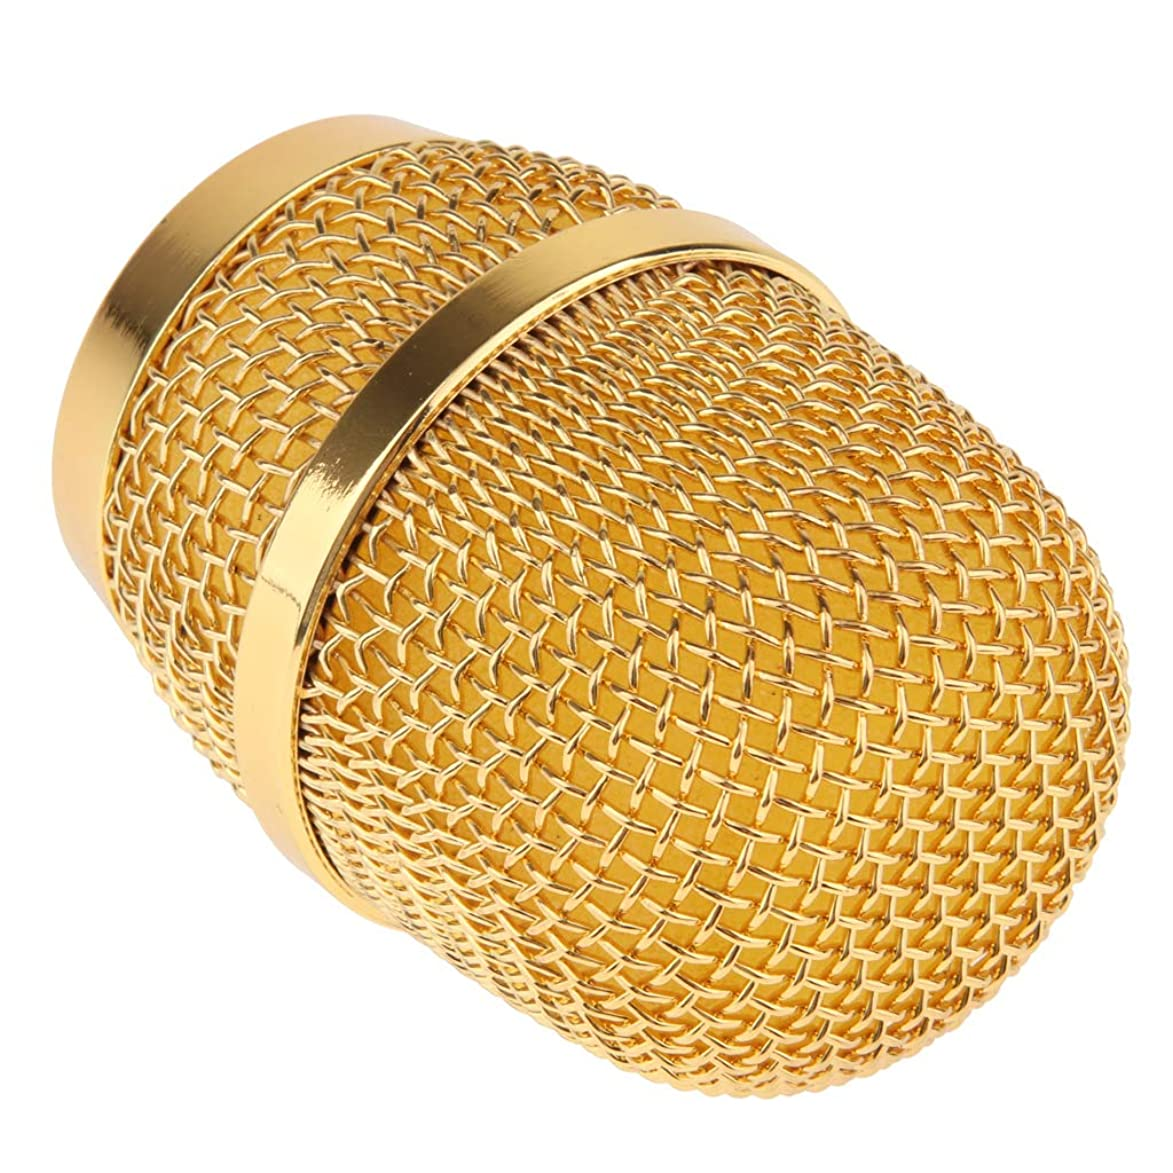 CUTICATE Replacement Steel Mesh Microphone Grill Head for Wireless Mics and Wired Mics - Gold, as described